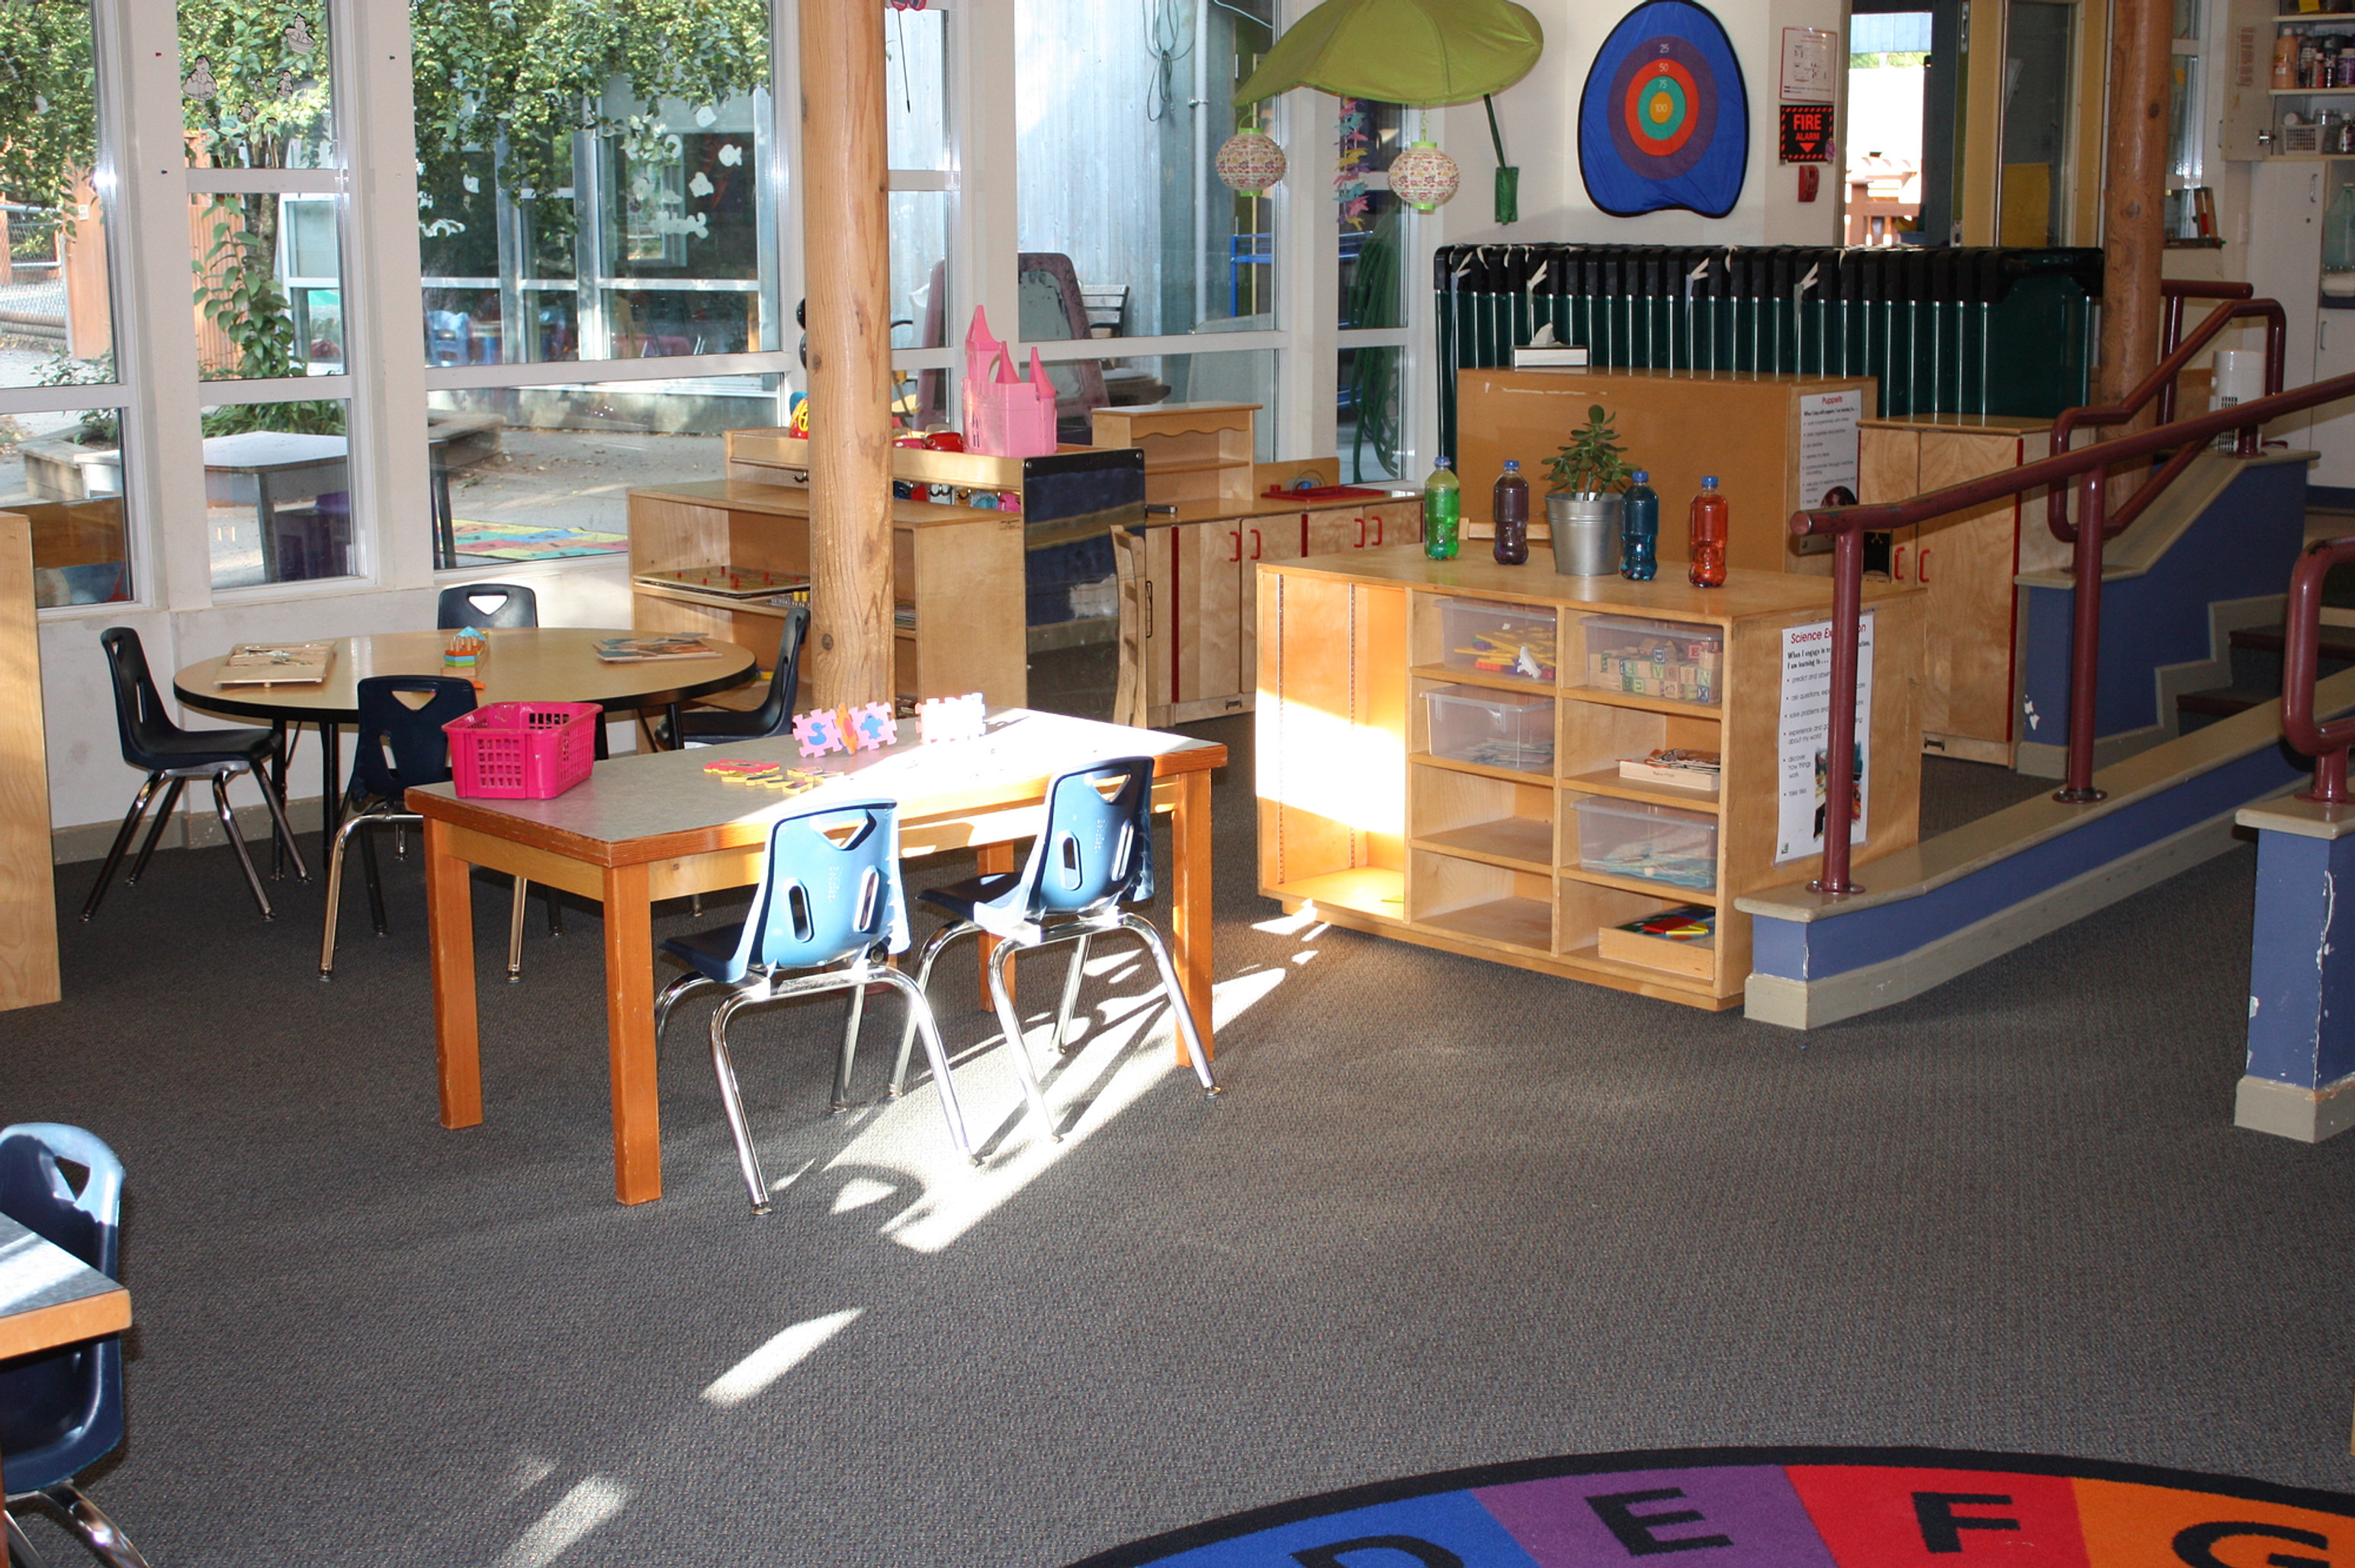 Enchanted woodland childcare centre create your wix site you can do it yourself start now solutioingenieria Images